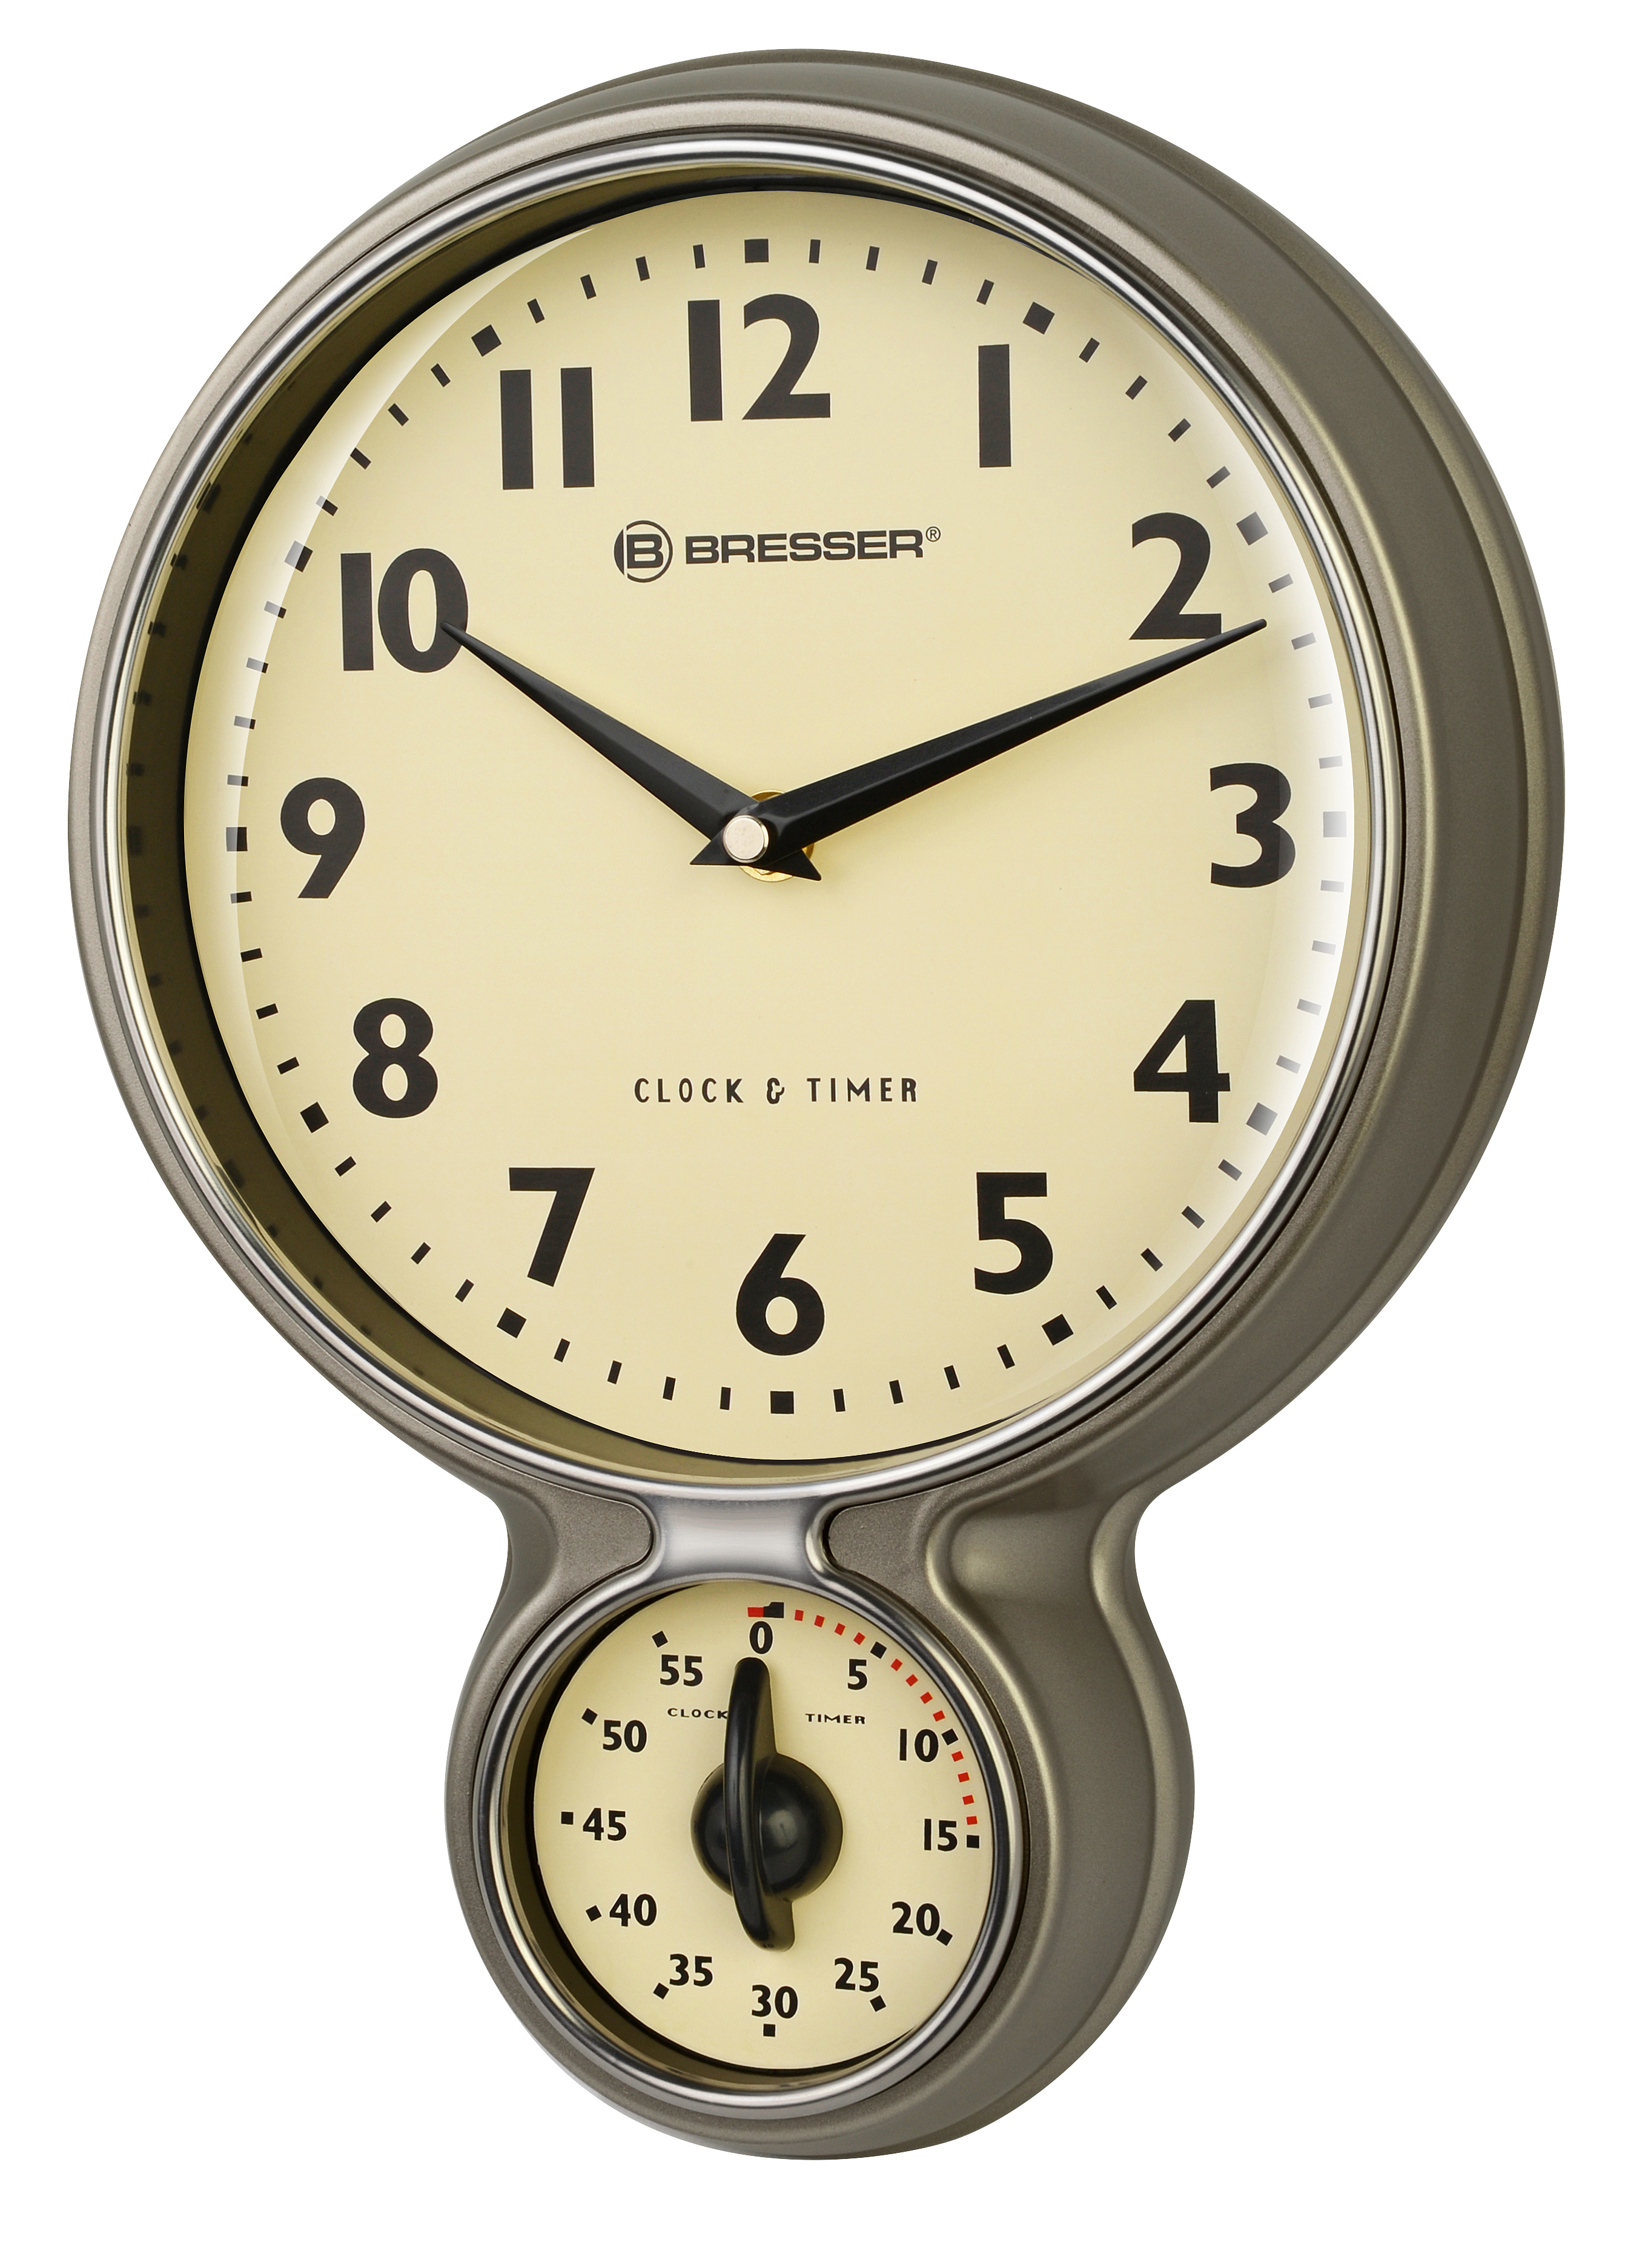 BRESSER MyTime Stainless Steel Retro Kitchen Clock U0026 Timer